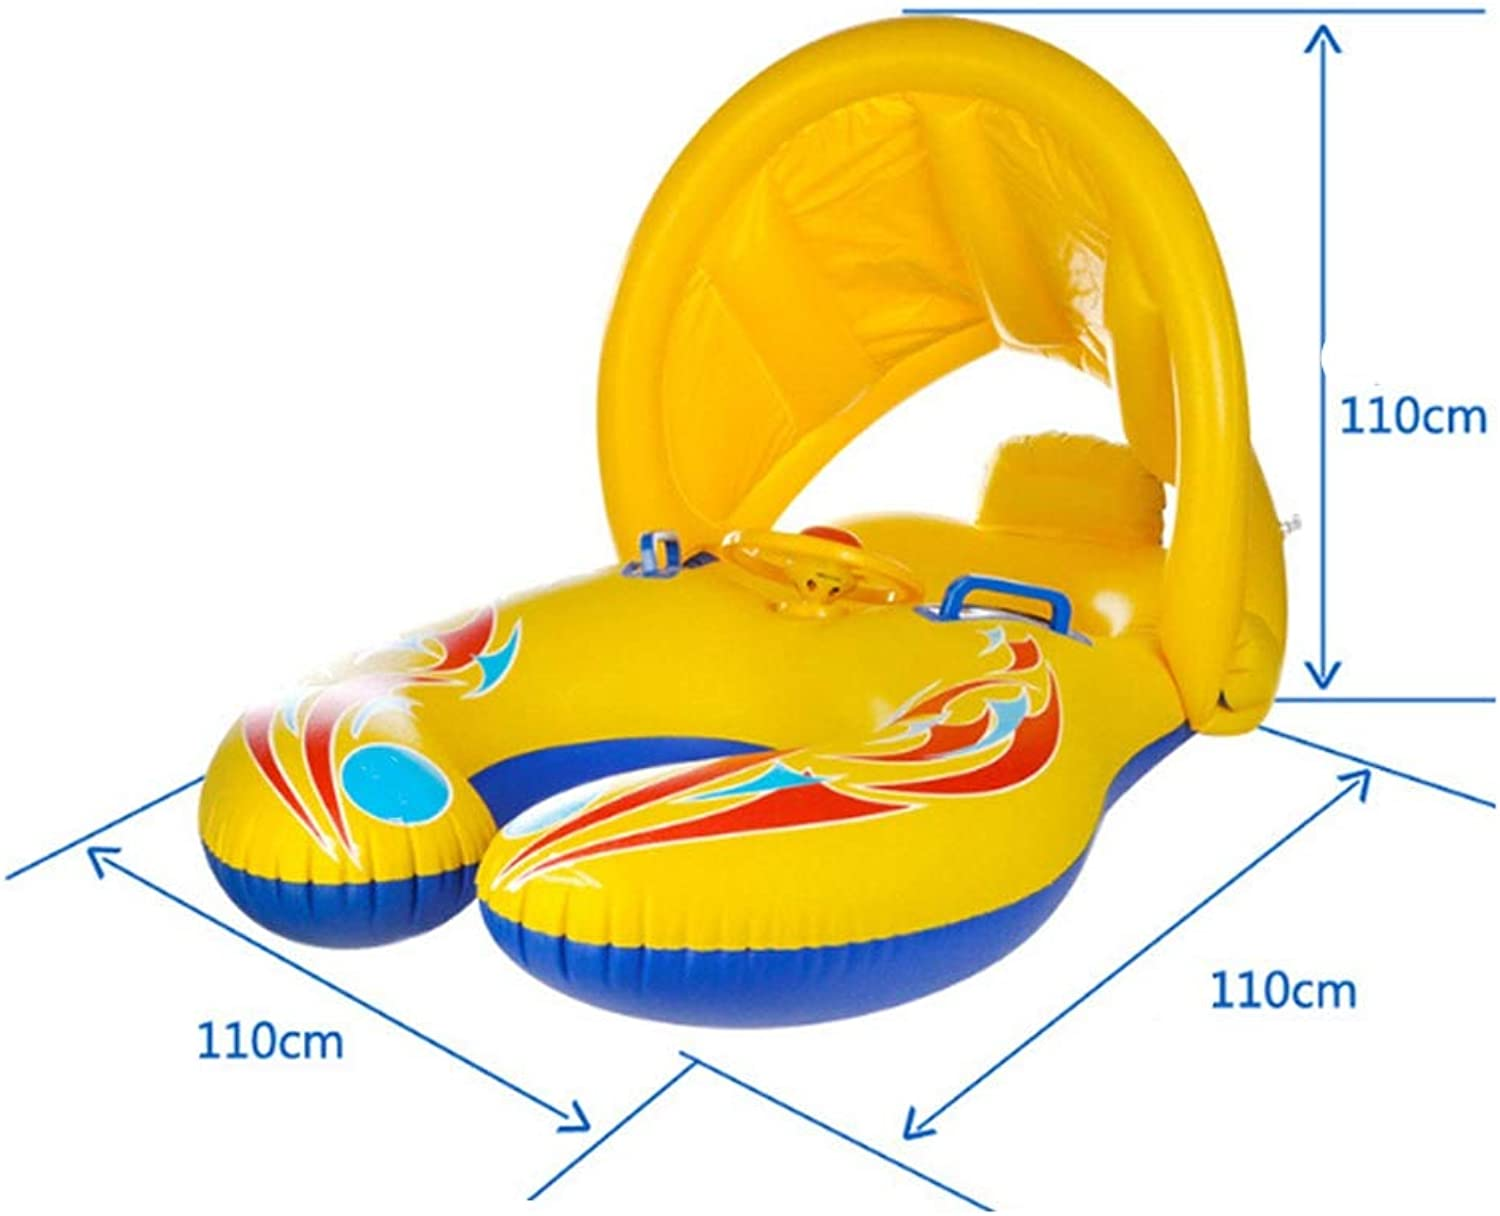 LIJIE Summer Mother and Baby Swim Float with Removable Safety Inflatable Sunshade Canopy, Beach Pool Water Double Person Swimming Ring toy for Kids